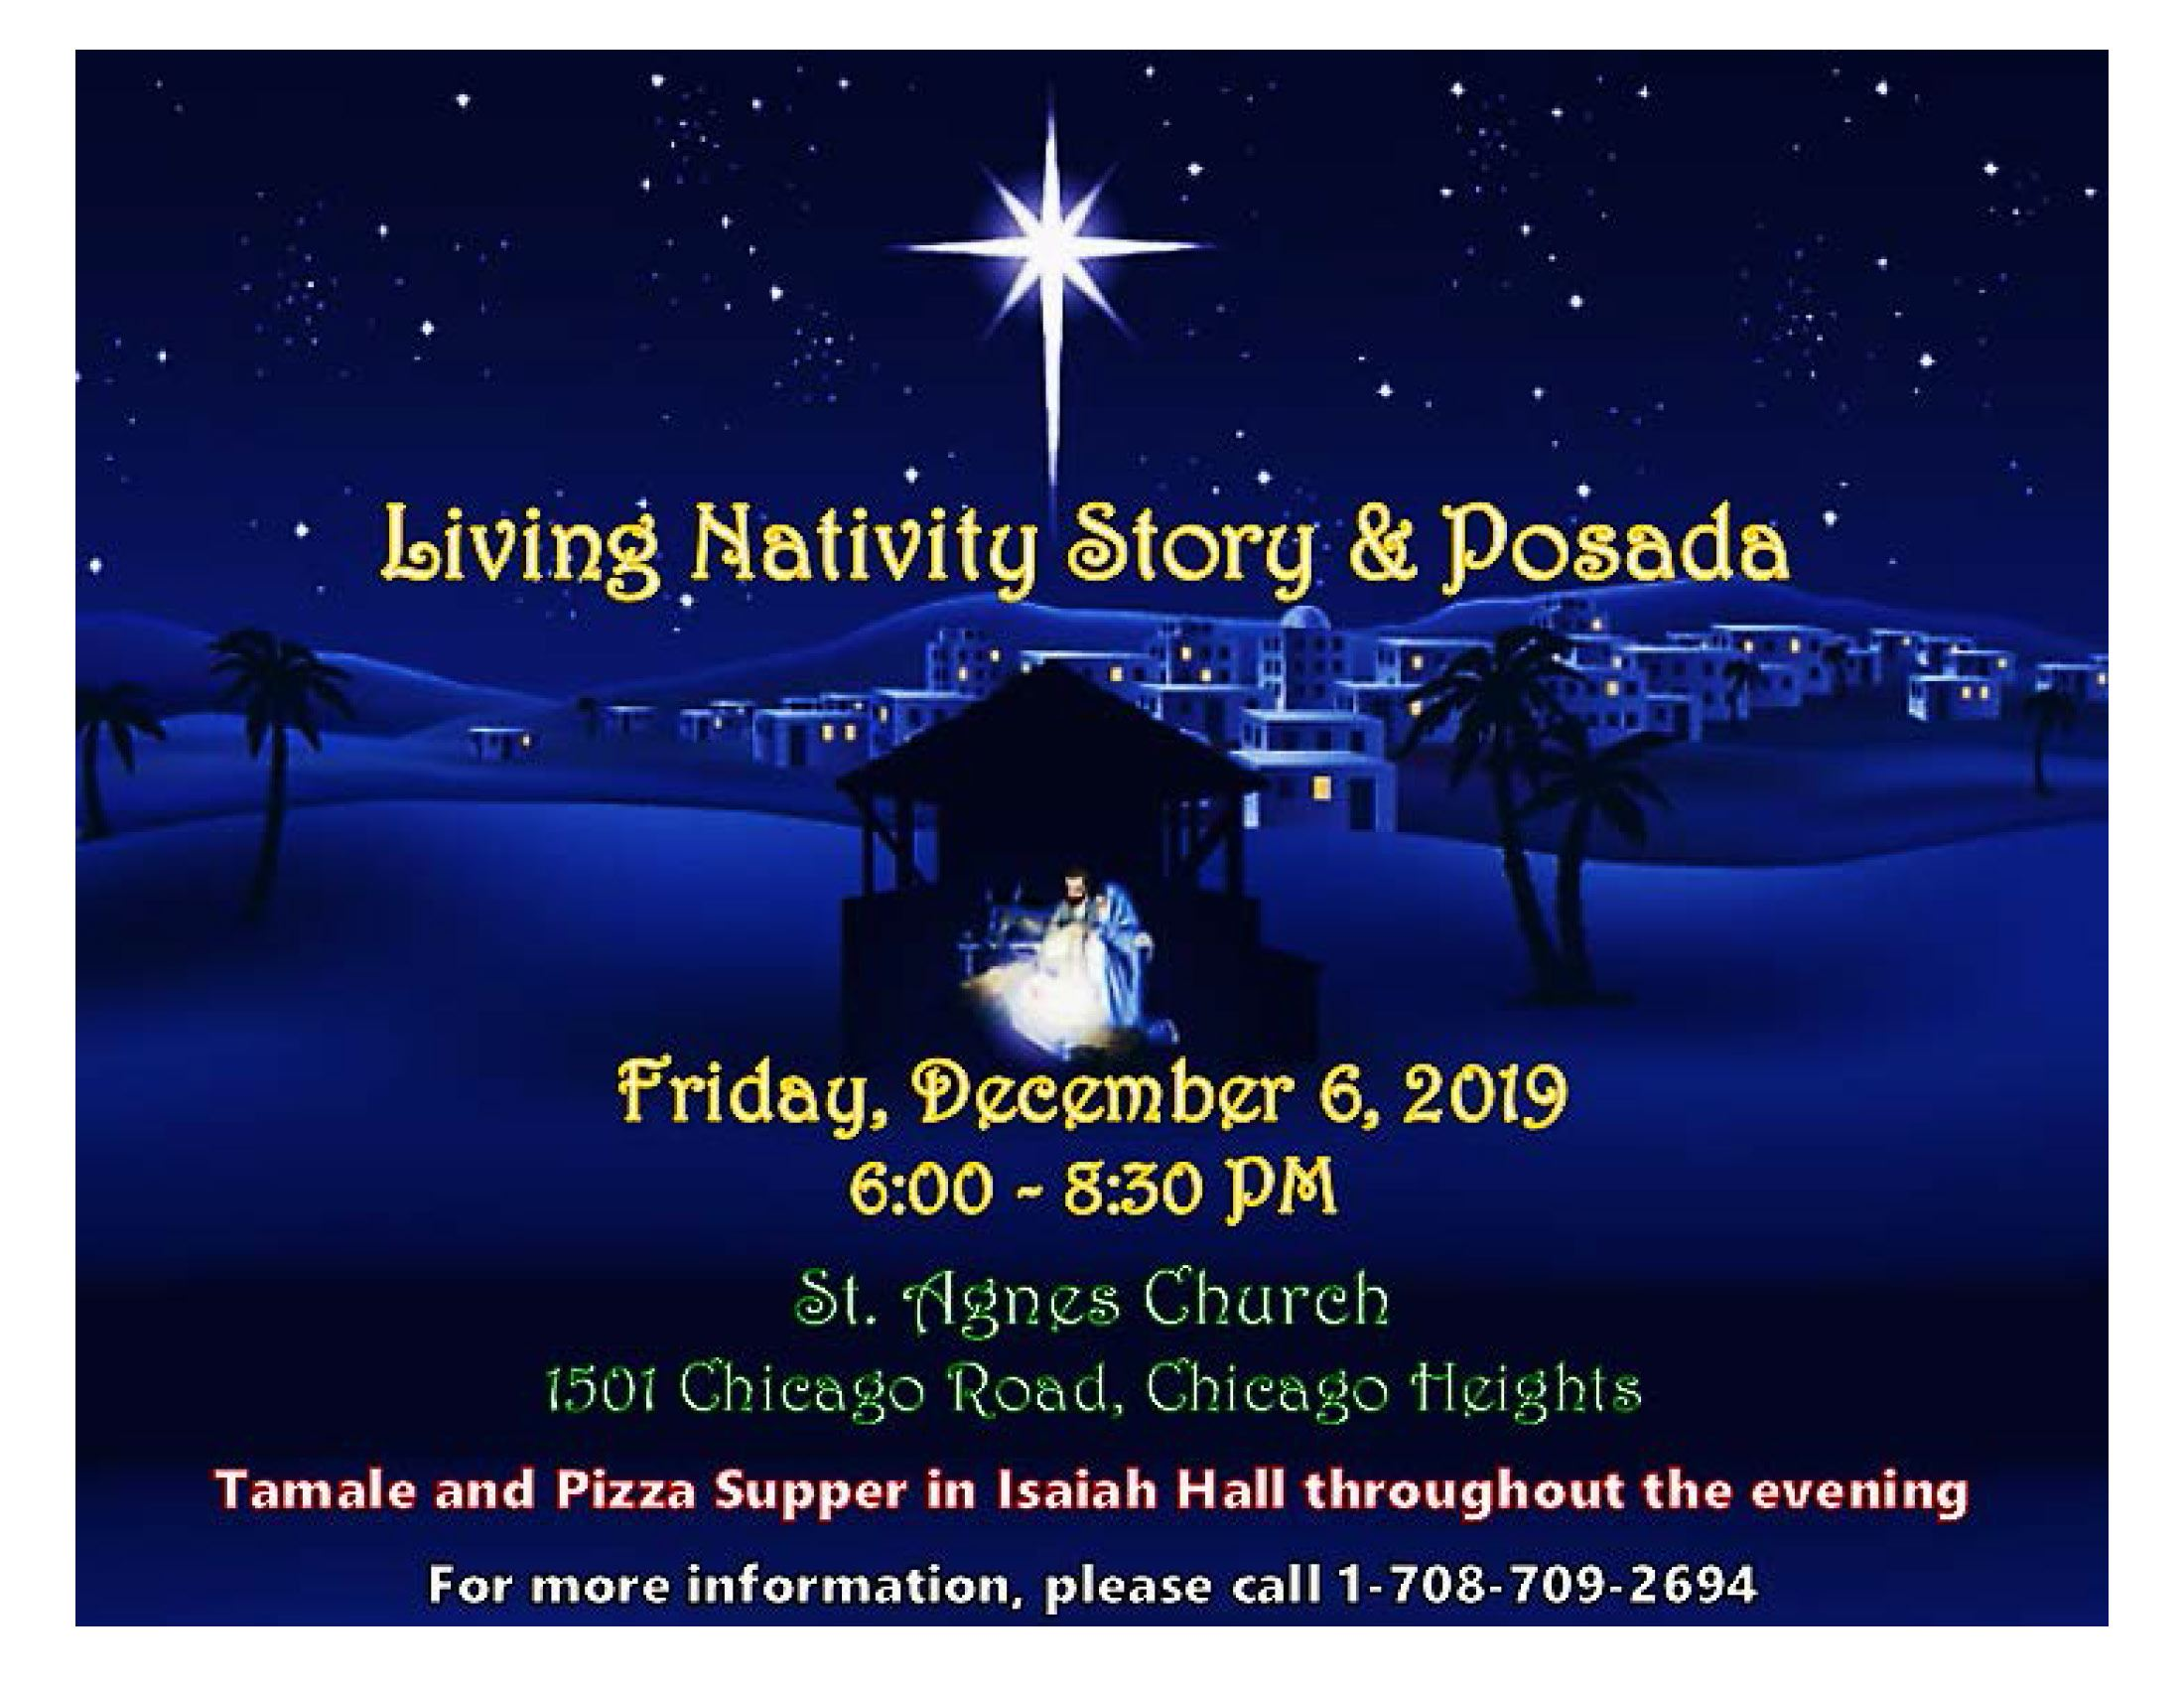 Annual Living Nativity Story - St. Agnes Church - Friday, December 6, 2019